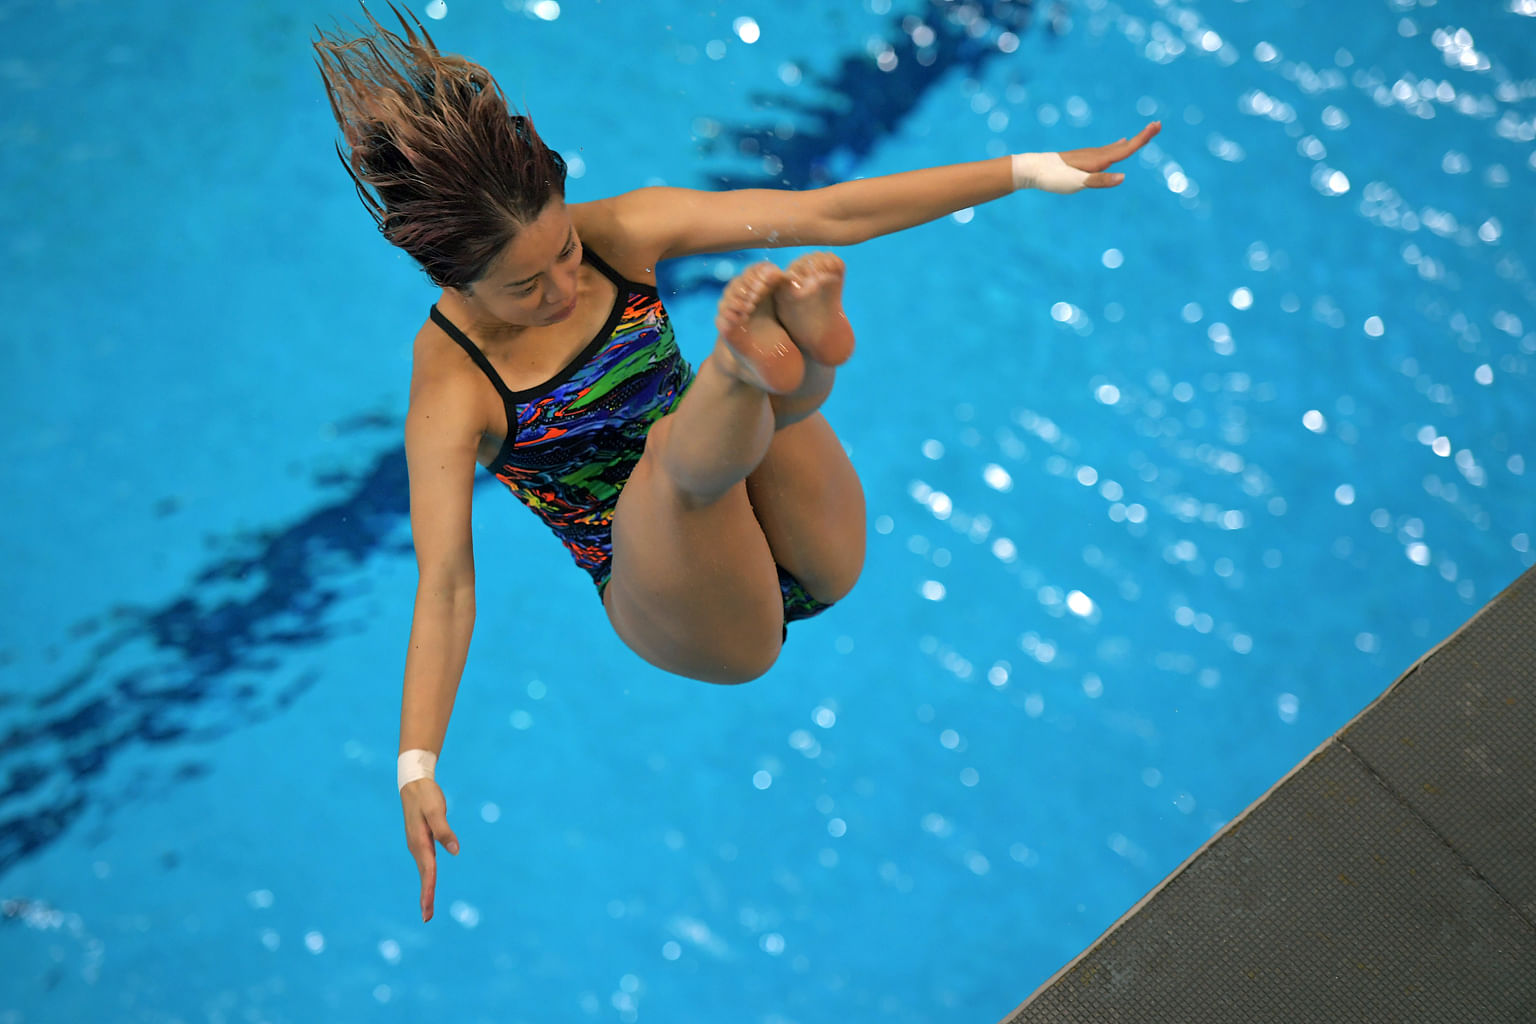 Making the grade for this year's Asian Games in Jakarta and Palembang is a priority for local platform diver Myra Lee. That goal of hers will drive her through this year's toils.